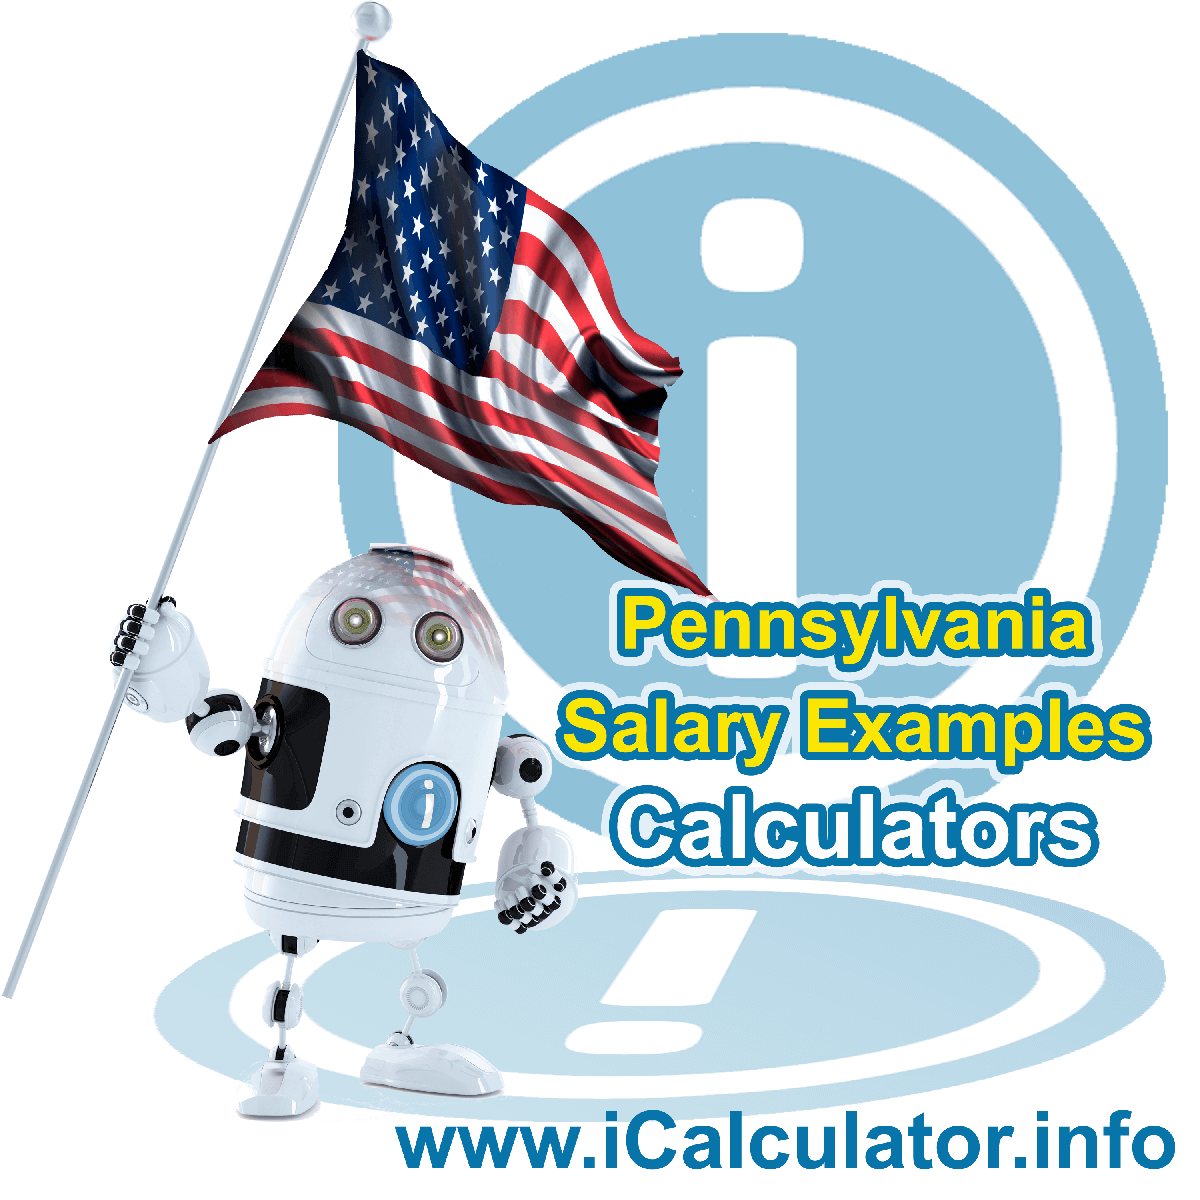 Pennsylvania Salary Example for $90,000.00 in 2021 | iCalculator™ | $90,000.00 salary example for employee and employer paying Pennsylvania State tincome taxes. Detailed salary after tax calculation including Pennsylvania State Tax, Federal State Tax, Medicare Deductions, Social Security, Capital Gains and other income tax and salary deductions complete with supporting Pennsylvania state tax tables